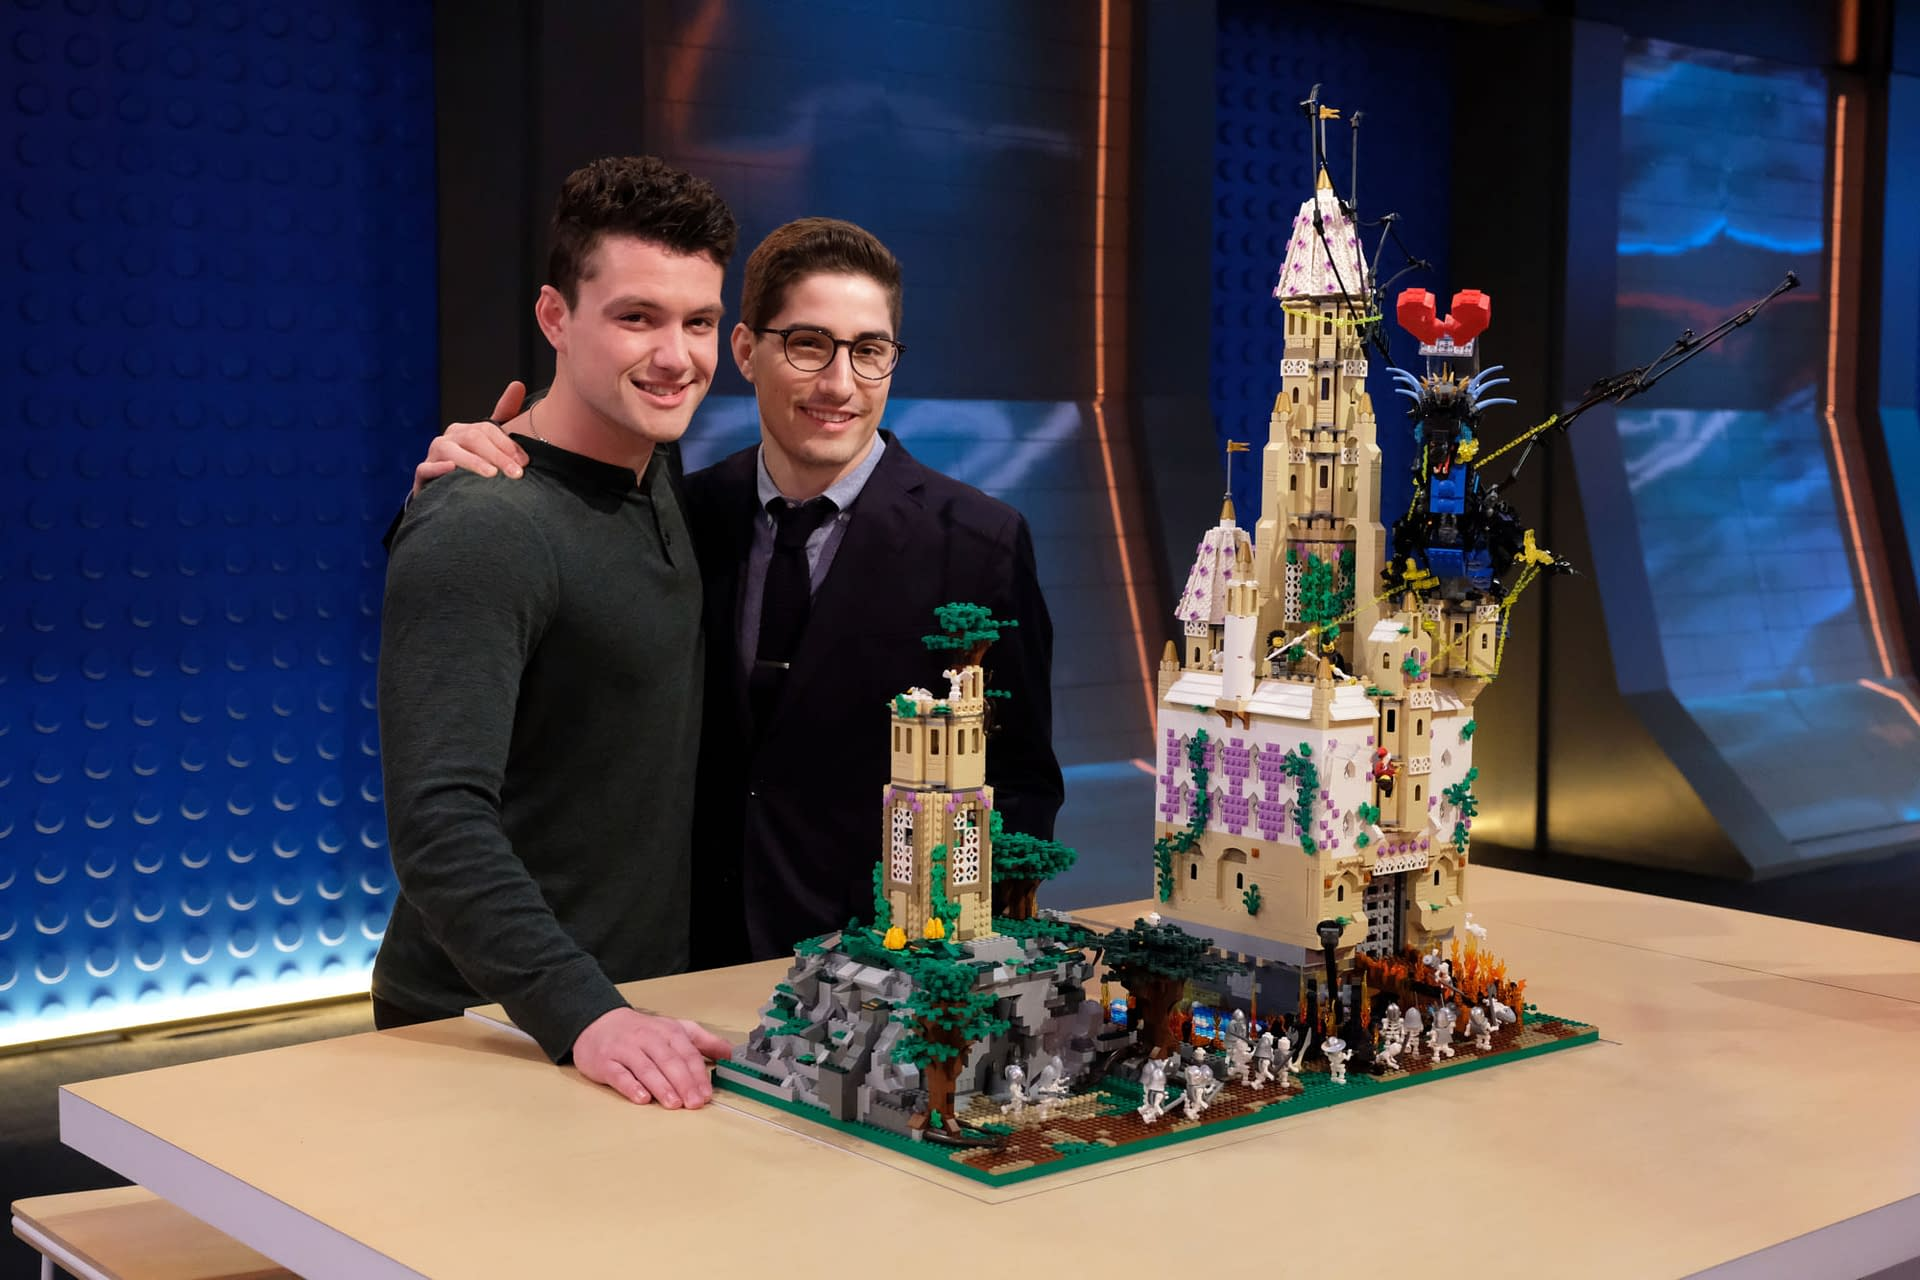 """""""LEGO Masters"""" Season 1 """"Movie Genres"""": Phil Lord, Christopher Miller (""""The LEGO Movie"""") Guest Star [PREVIEW]"""